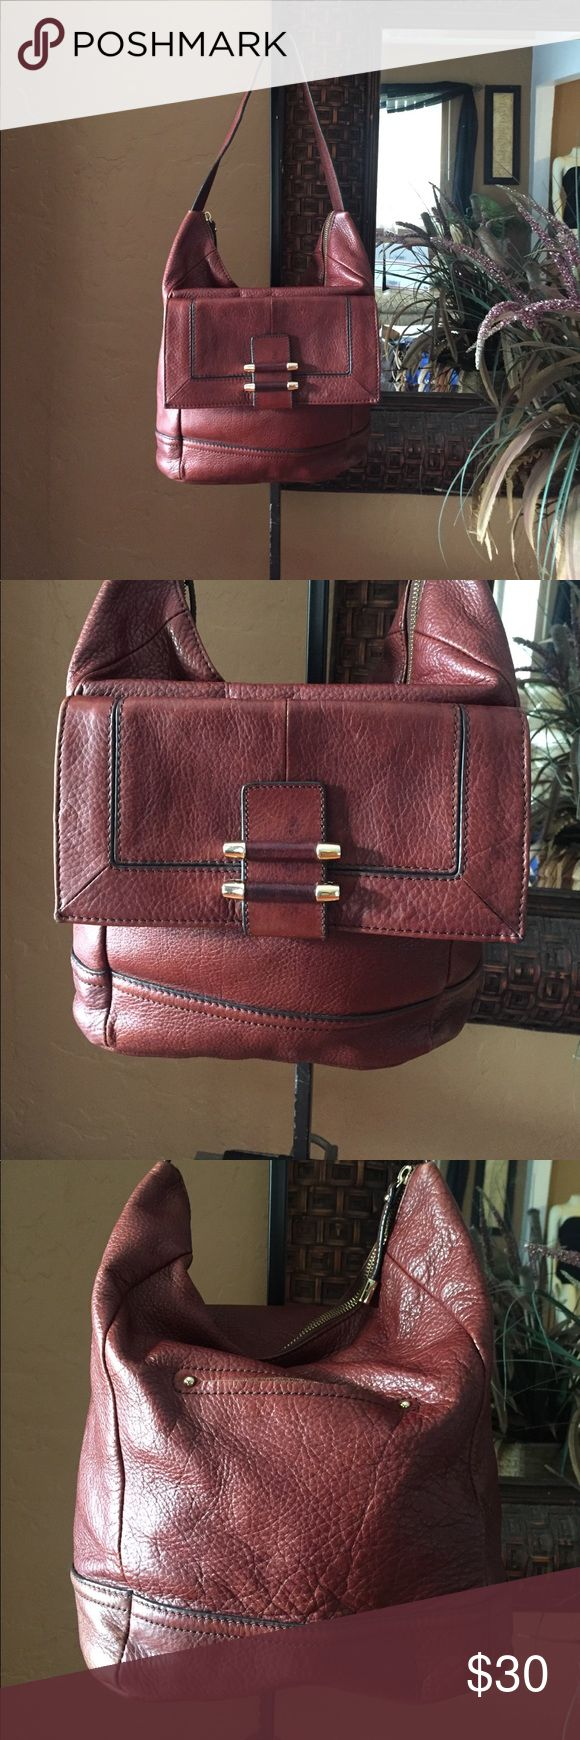 B Makowsky Handbag A brown in color leather handbag that measure about 11 inches from top to bottom and and about 14 inches from side to side and strap drop about 8 inches in good used condition. B Makowsky Bags Shoulder Bags